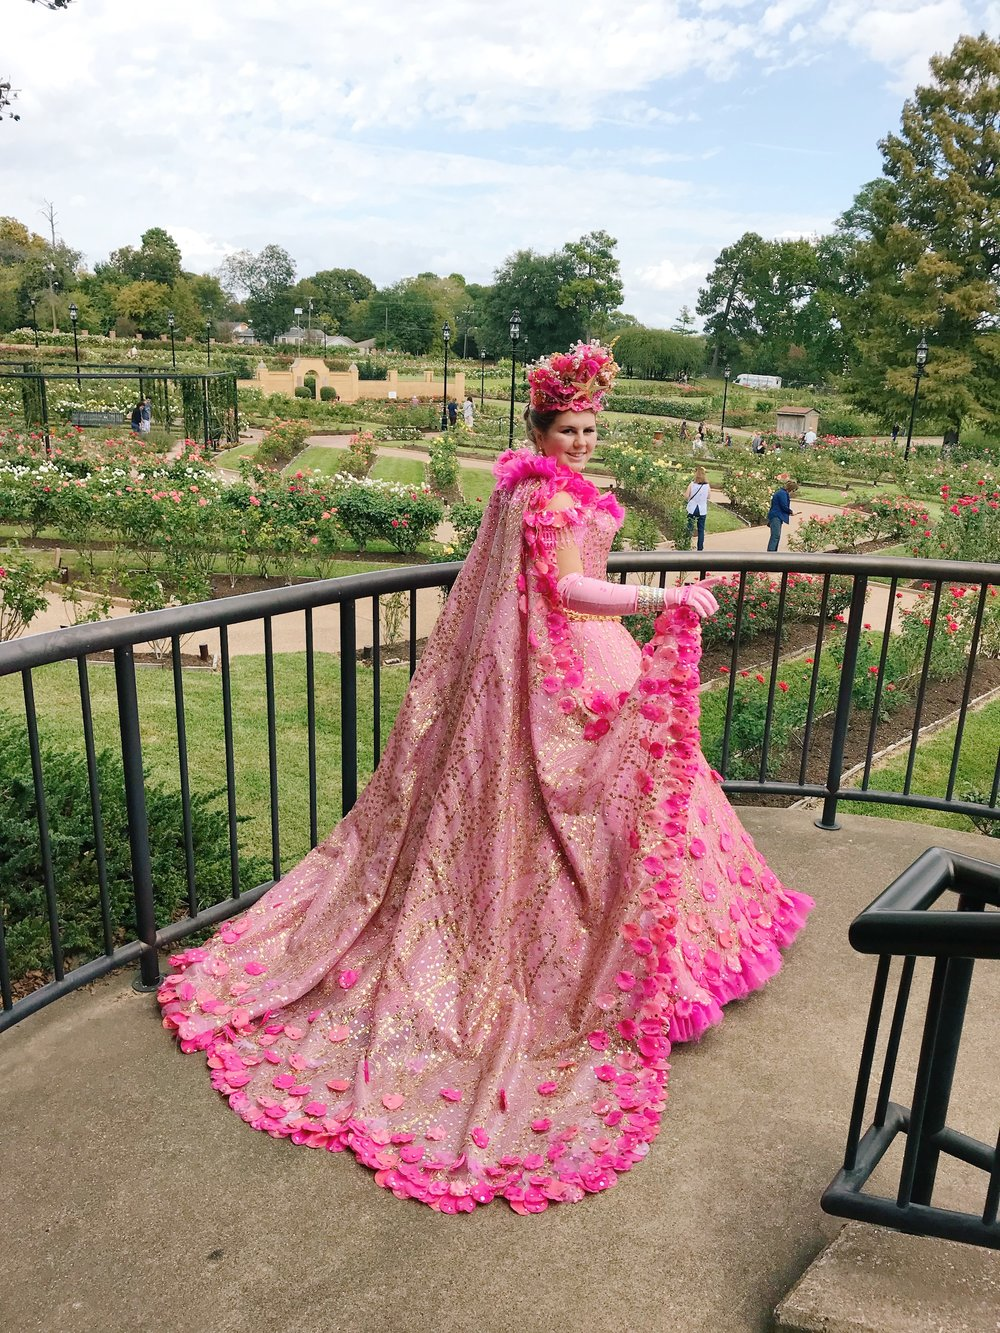 Texas Rose Festival - A Deb Ball full of 'Celestial Wonders'